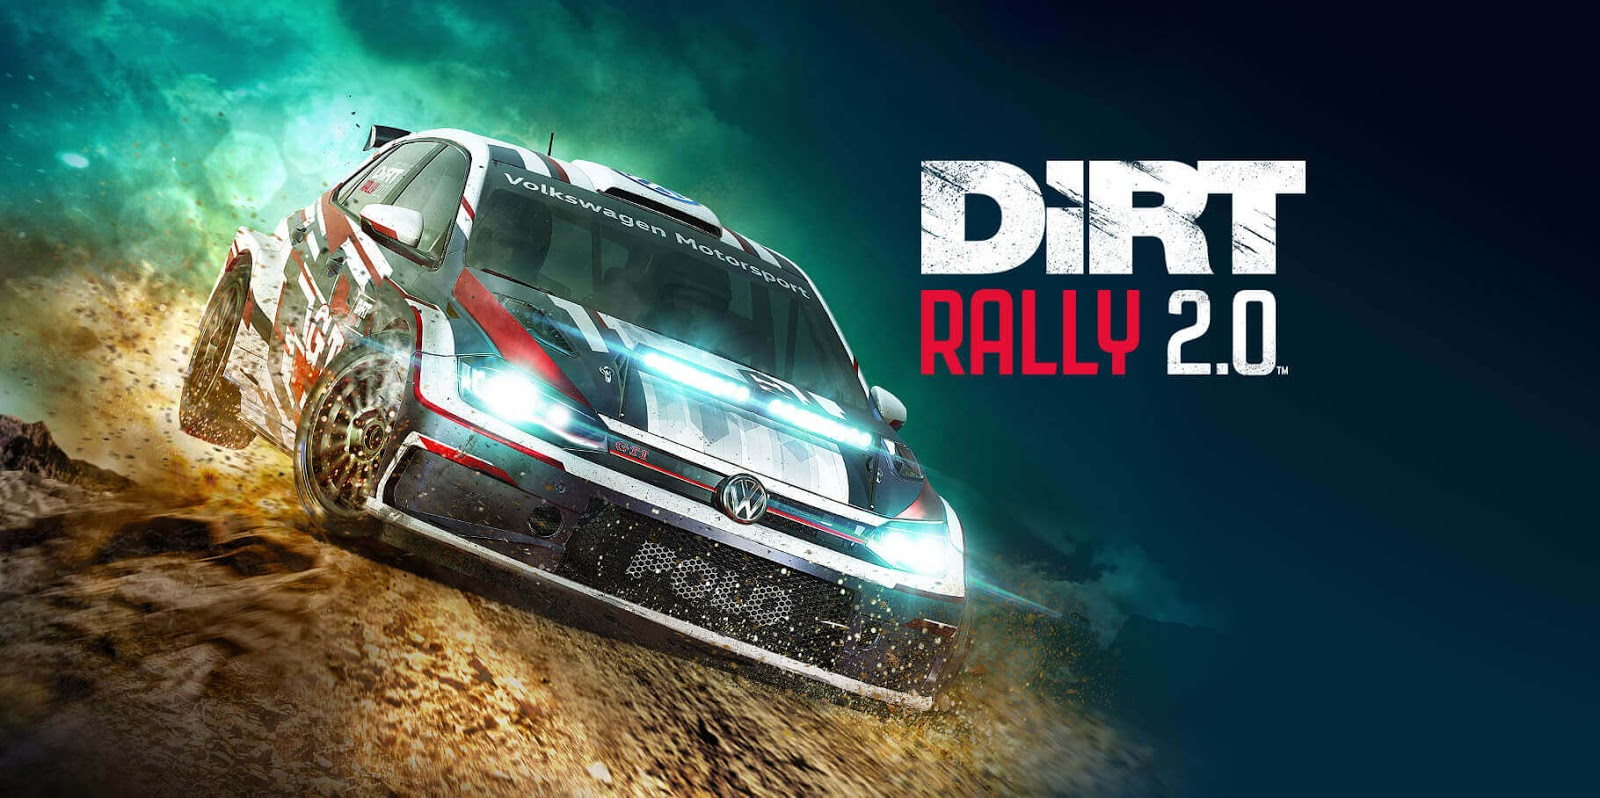 Oculus Rift VR Support Is Coming To Dirt Rally 2.0 This Summer